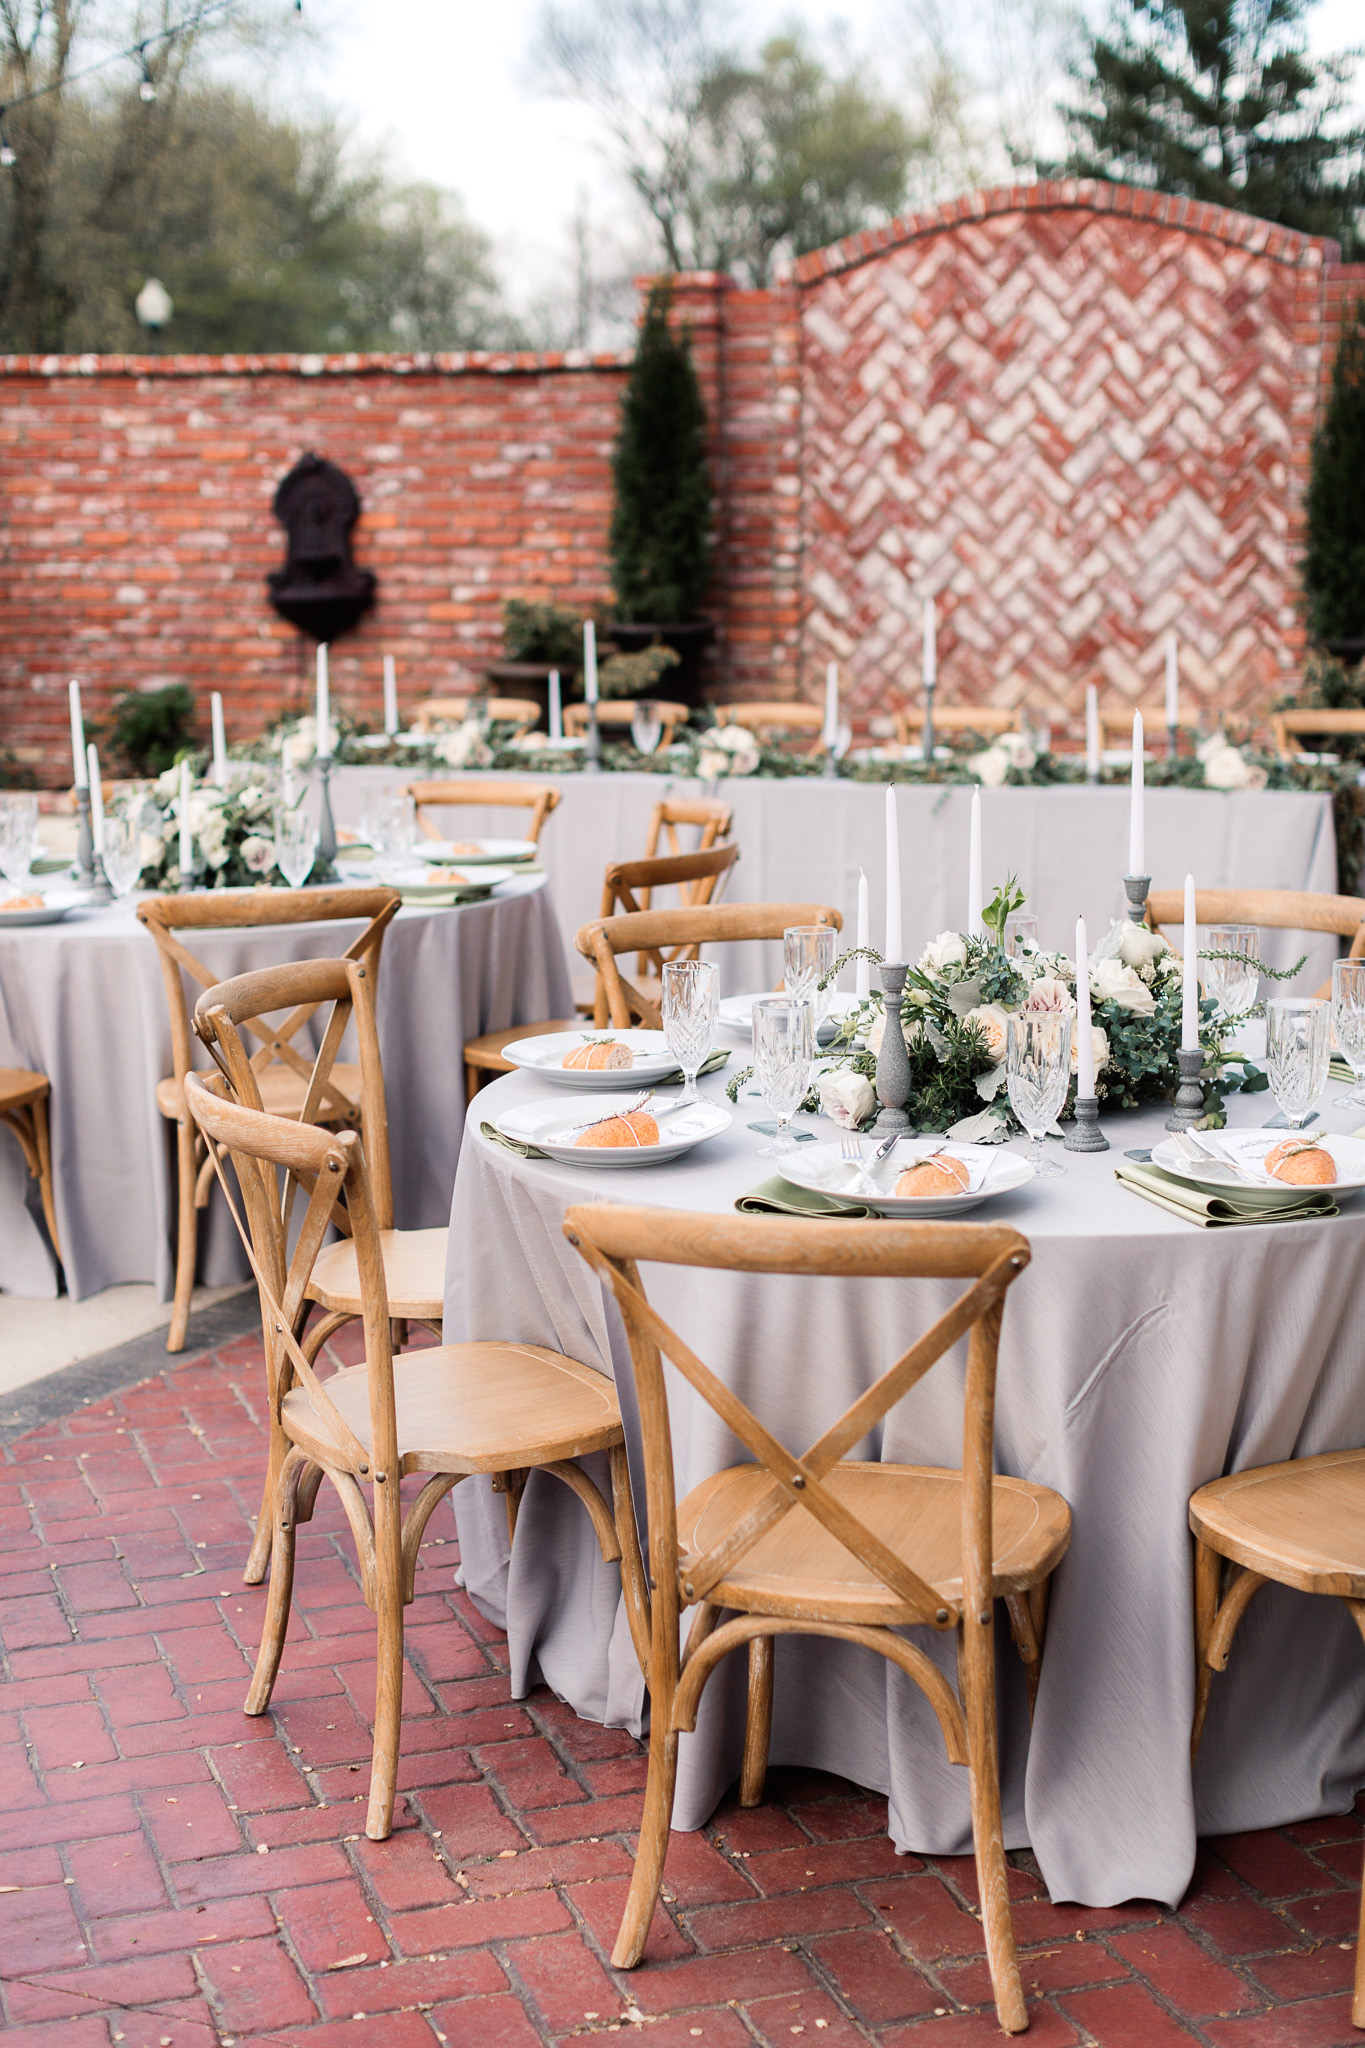 patio receptions - photo by B.Matthews Creative https://ruffledblog.com/organic-italian-inspired-wedding-ideas